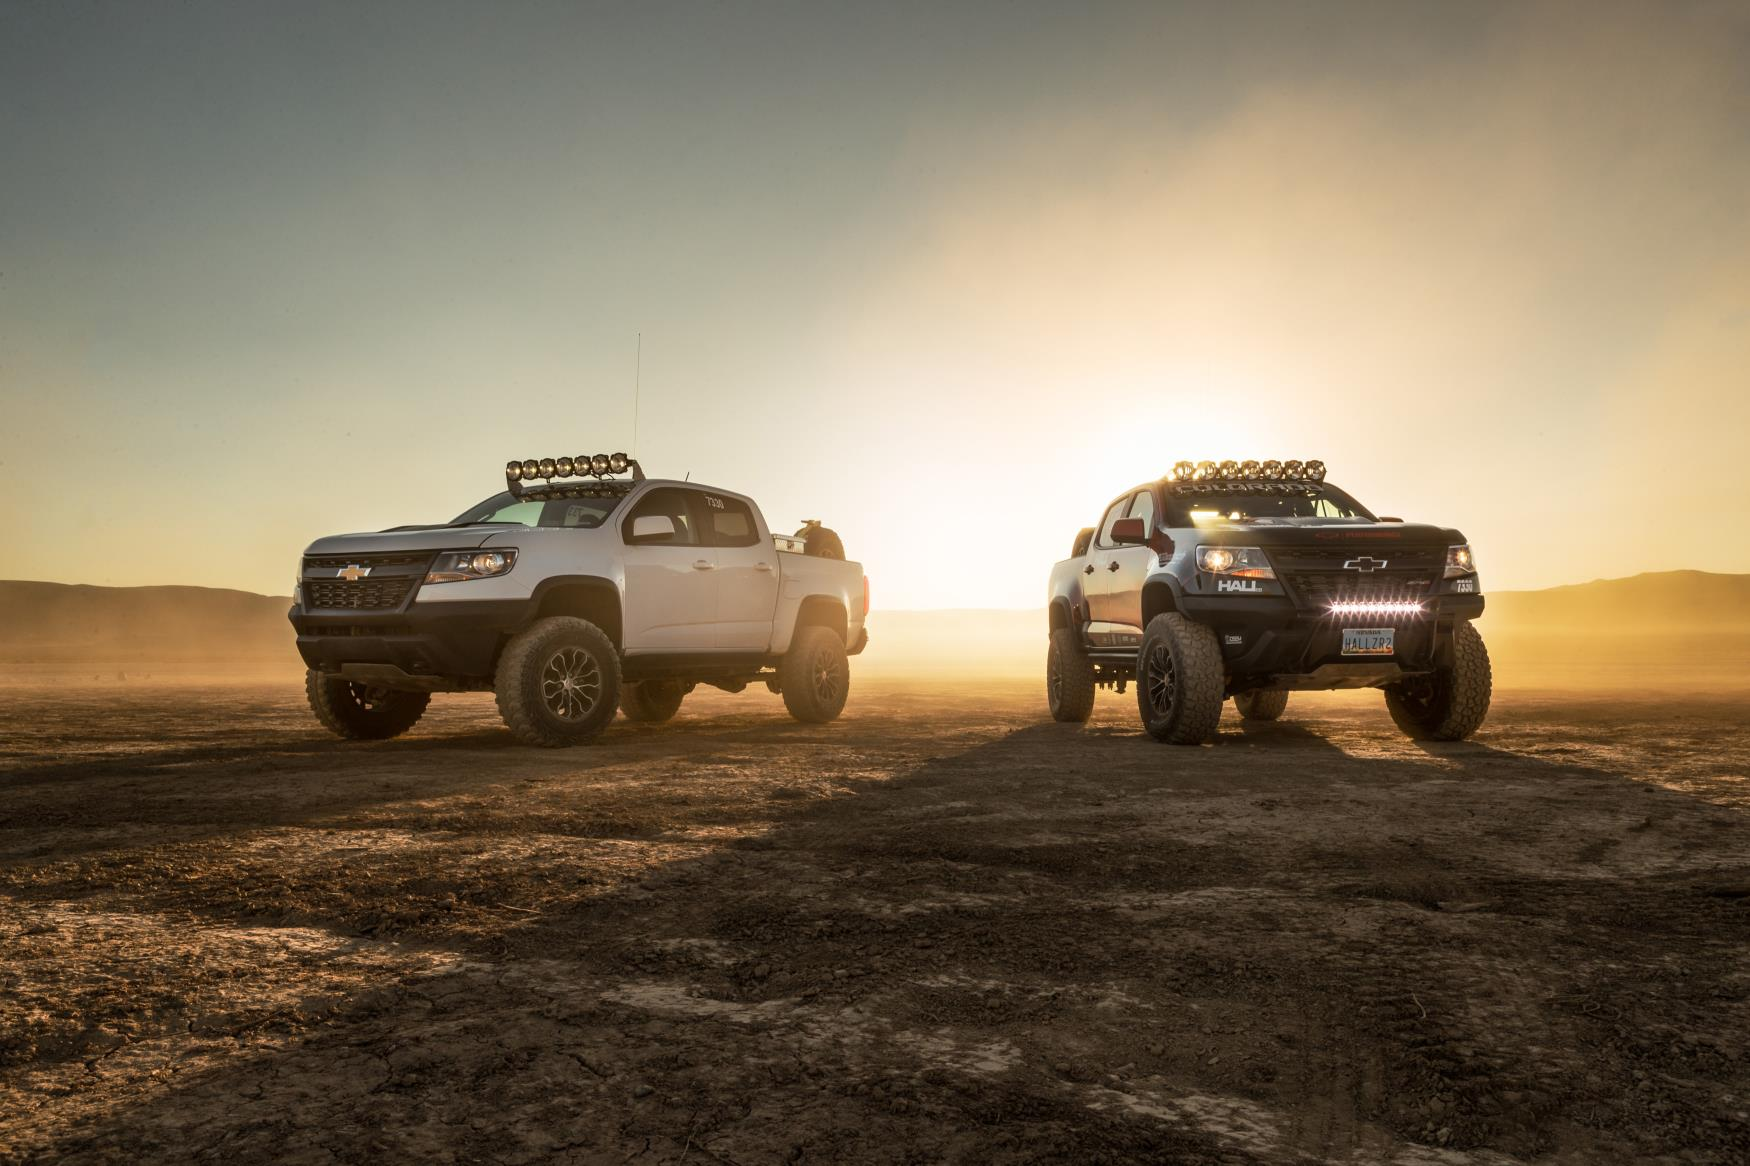 2017 Chevy Colorado Zr2 >> Chevy Colorado ZR2 AEV and ZR2 Race Development Trucks Debut at SEMA - autoevolution